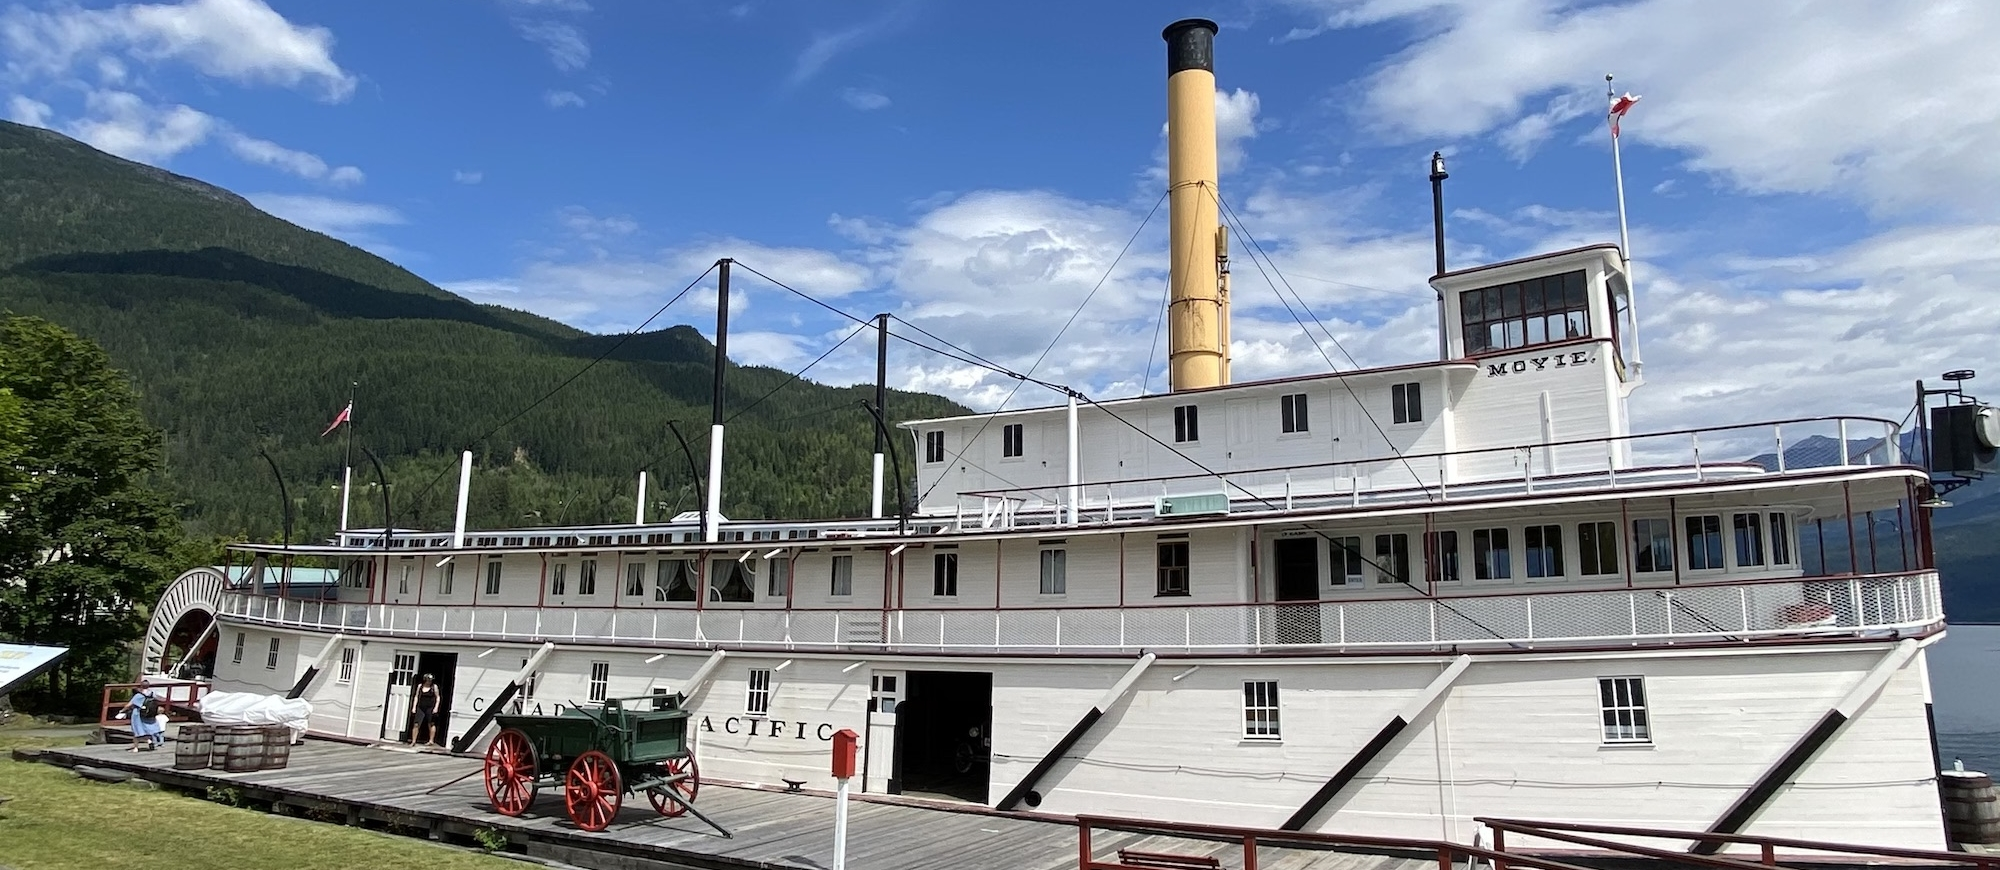 the SS Moyie and Visitor Centre sits with mountains in the background in Kaslo, BC